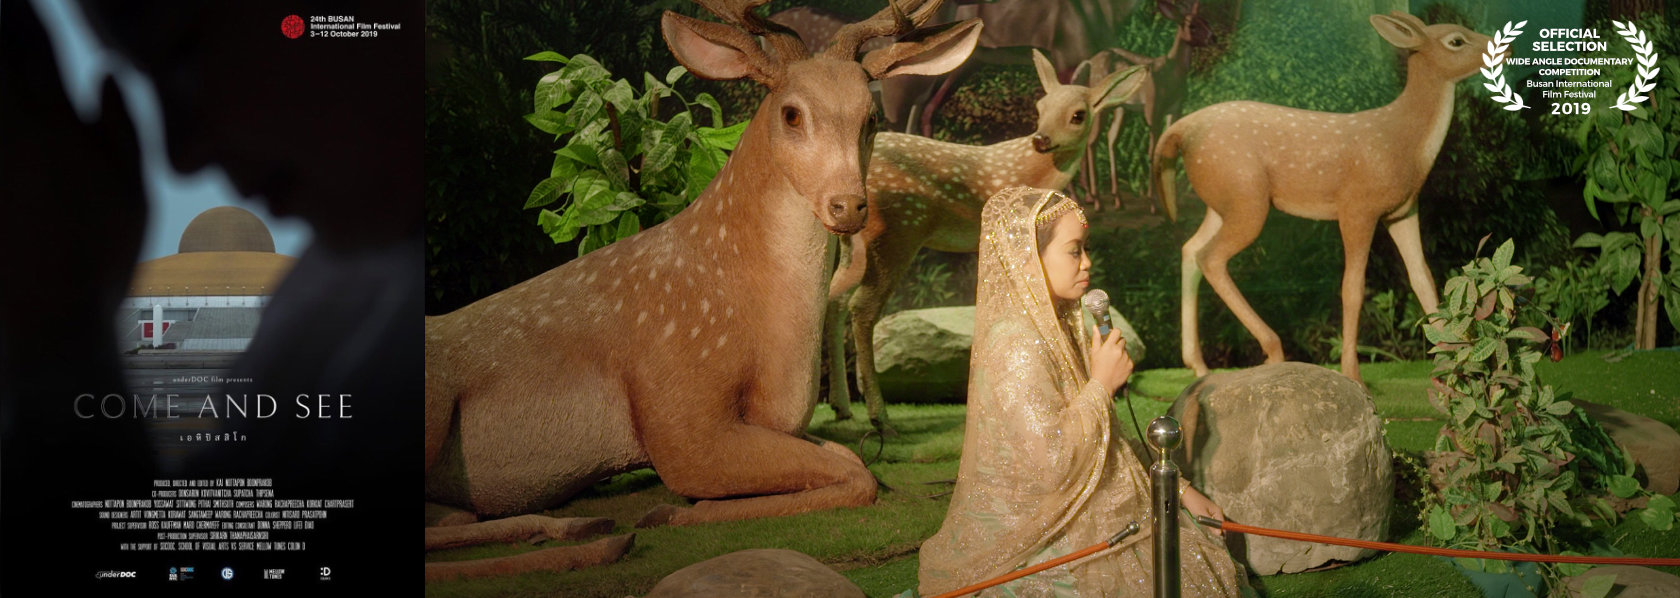 Young girl in lacy veil surrounded by deer - Come and See - THIS Buddhist Film Festival